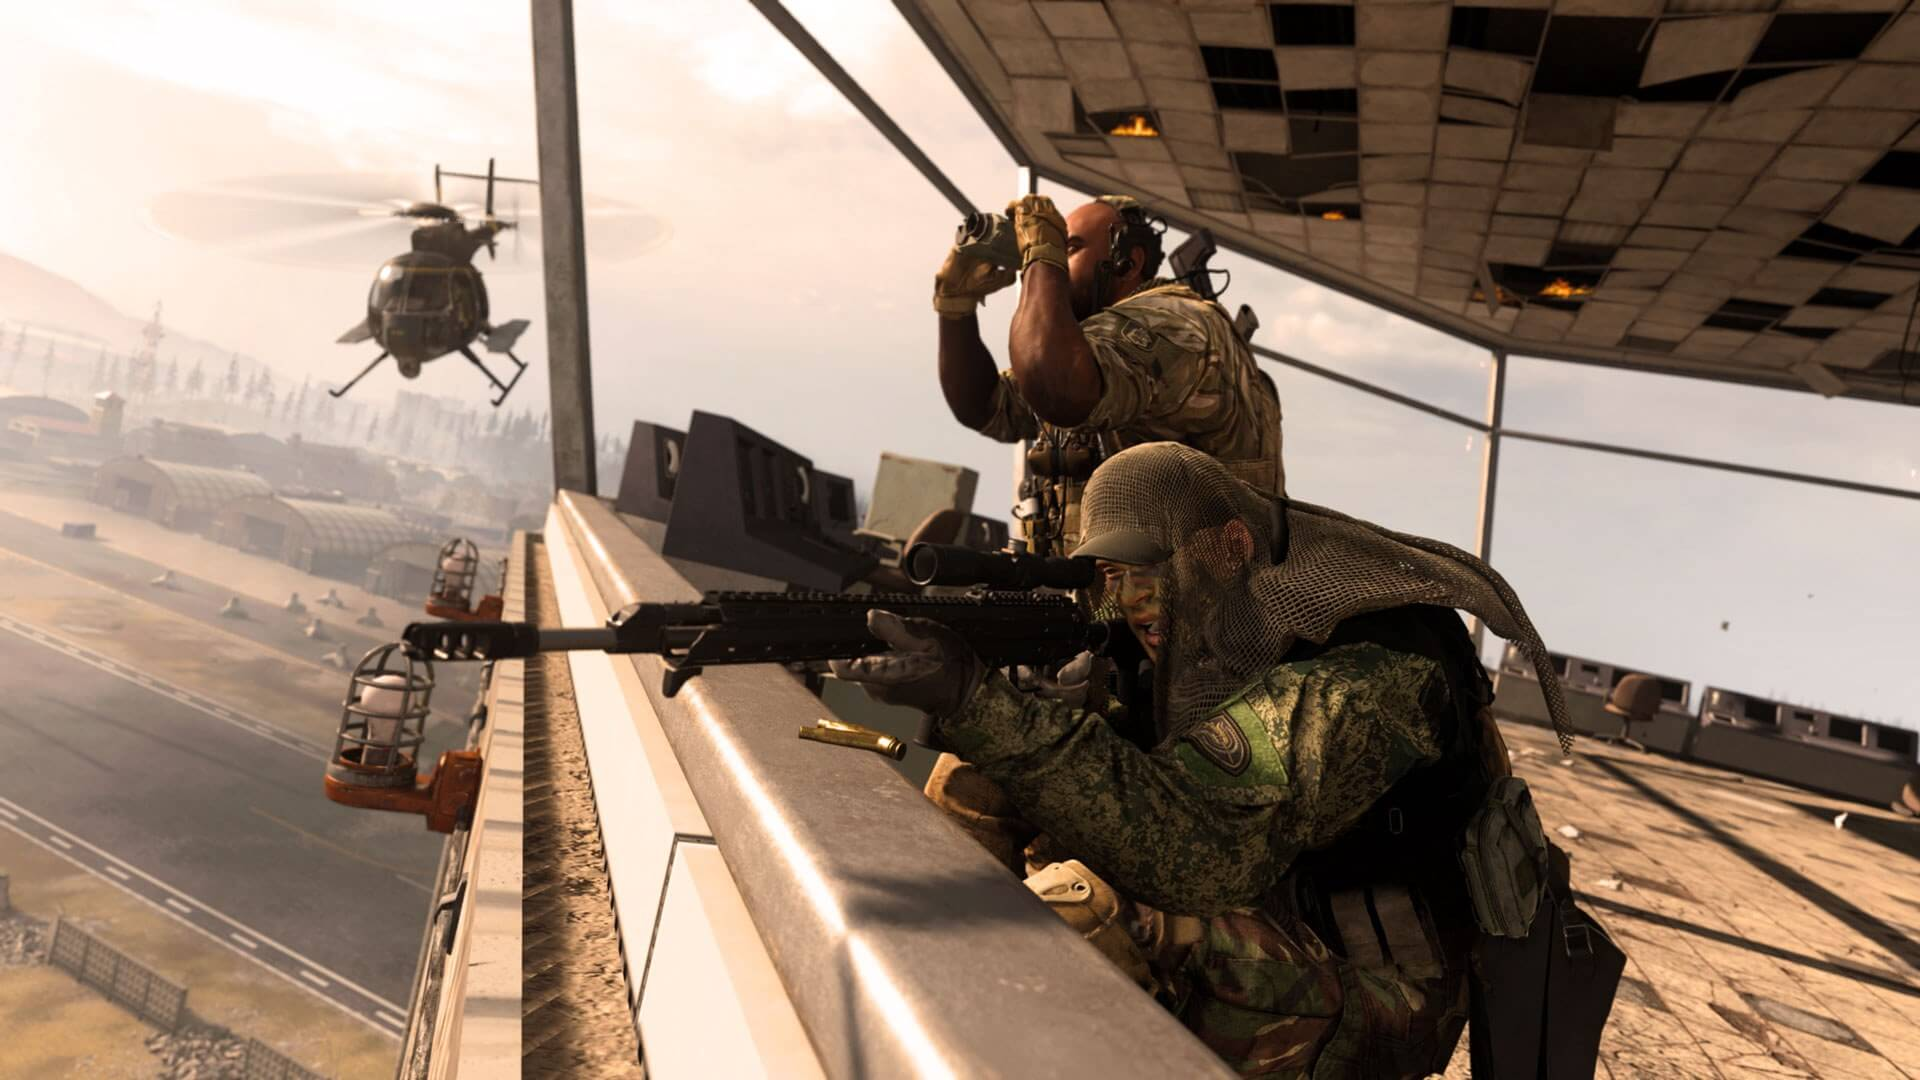 Call of Duty: Warzone attracted more than 30 million players in only 10 days